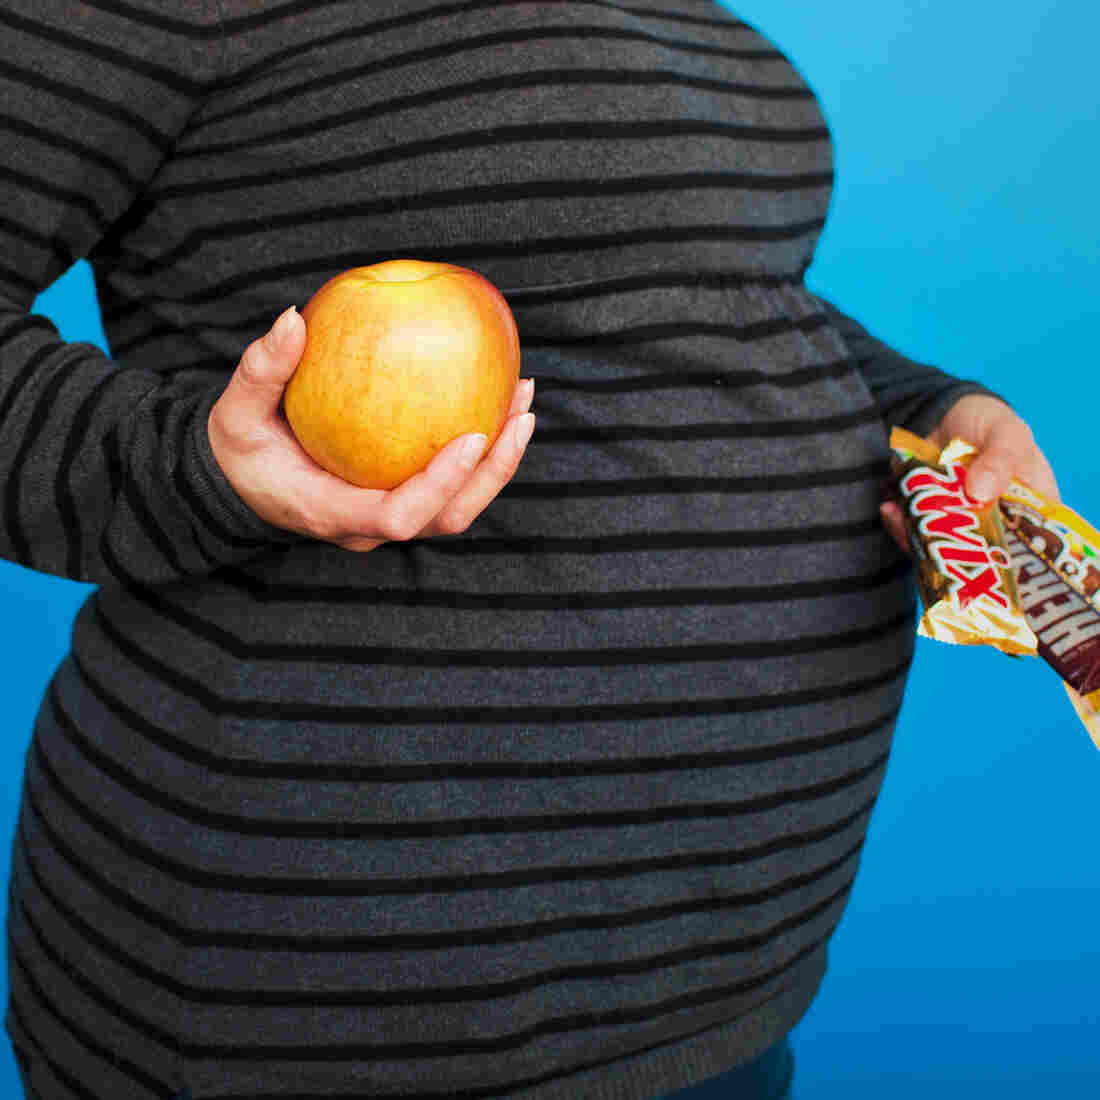 Choose wisely: What Mom eats during pregnancy can set the stage for obesity in her baby.